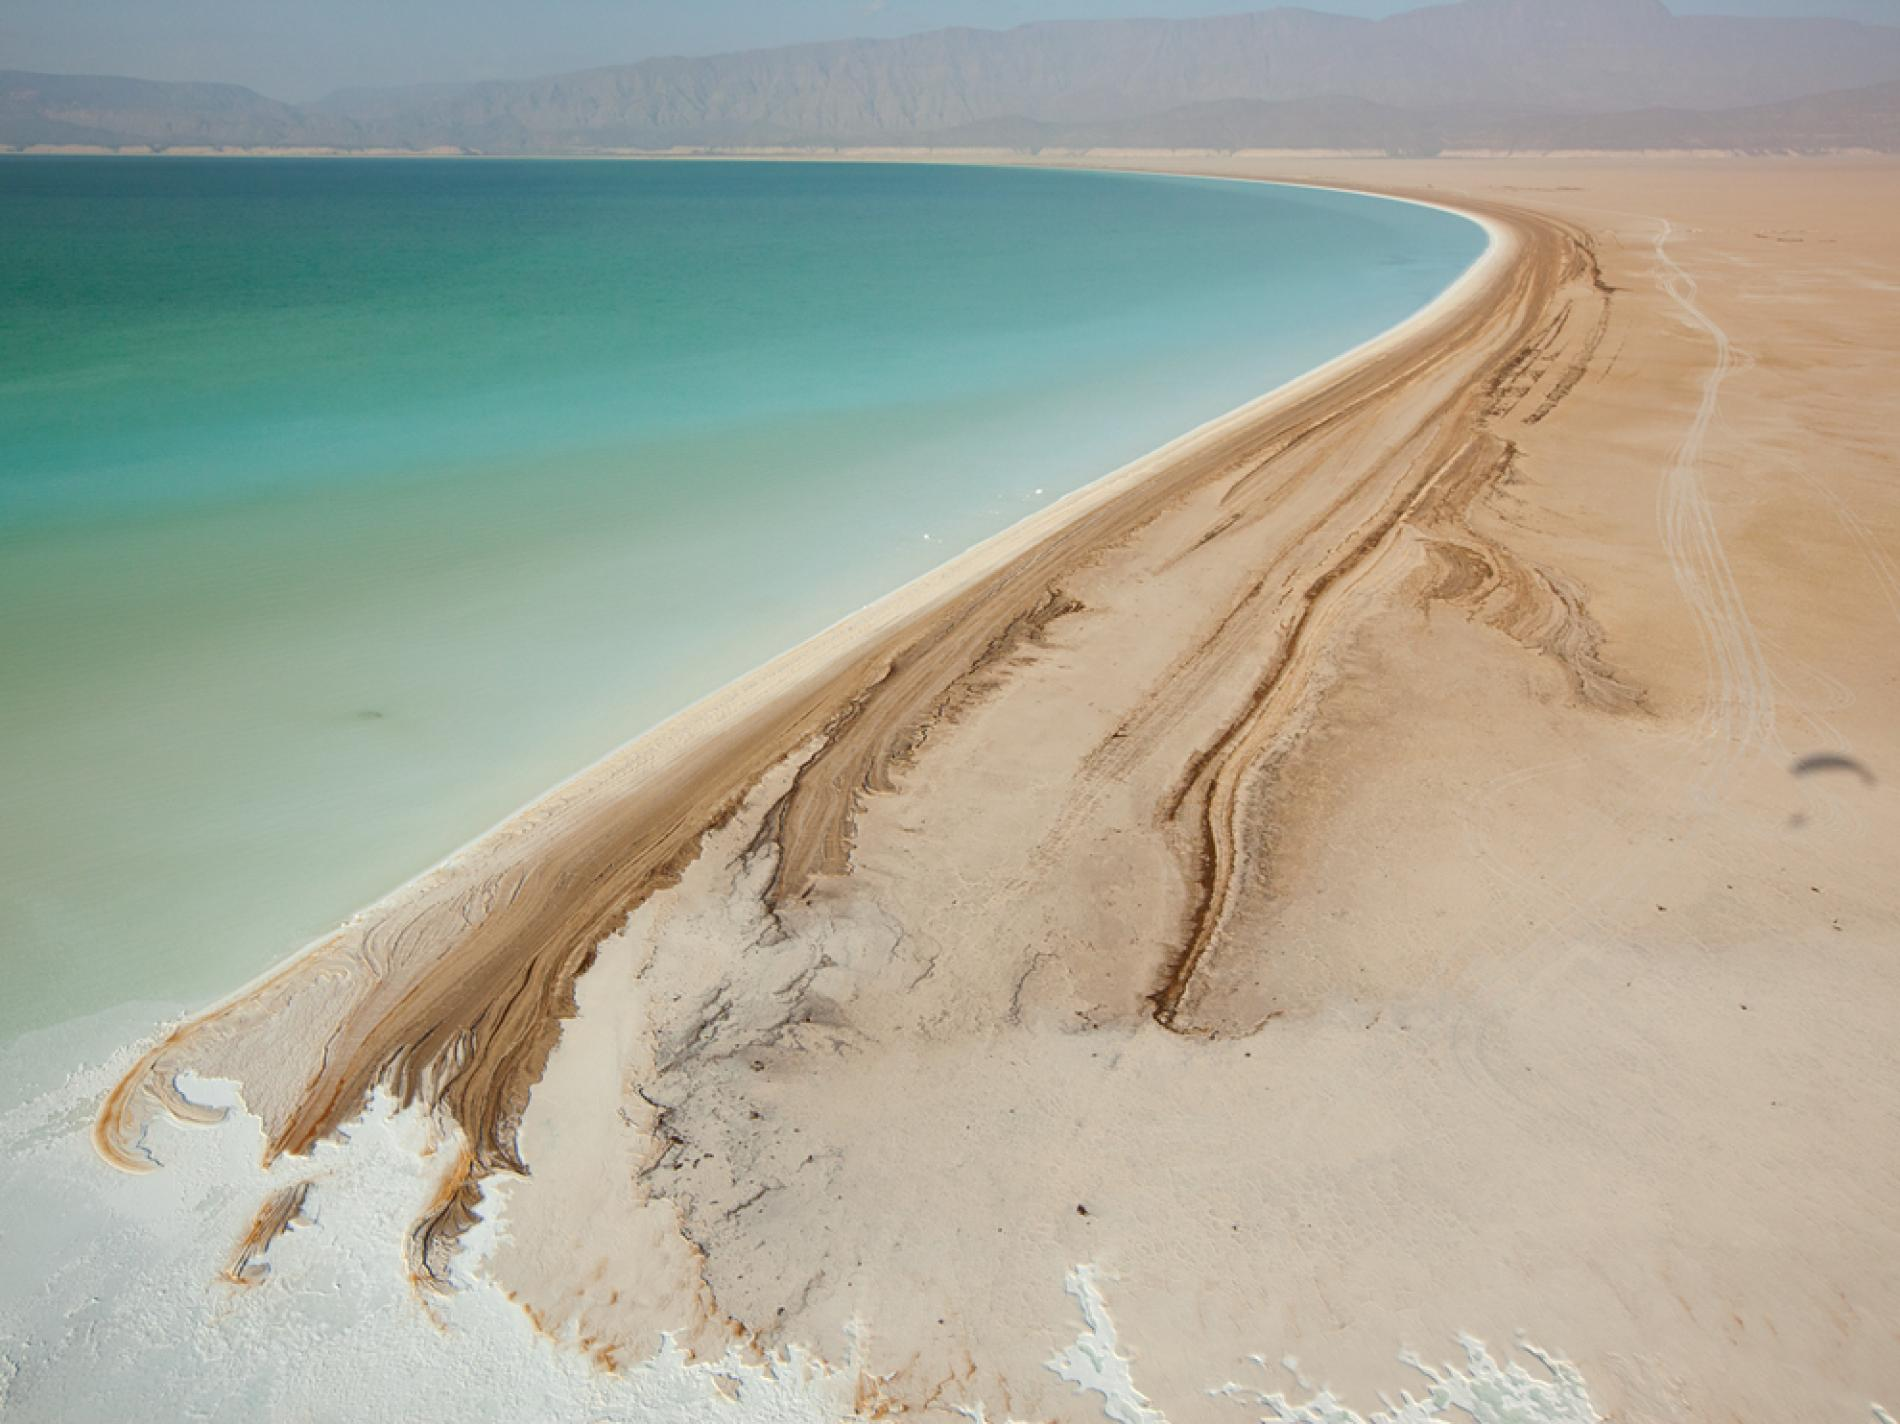 ARRICA'S LOWEST POINT - Lake Assal, Djibouti.